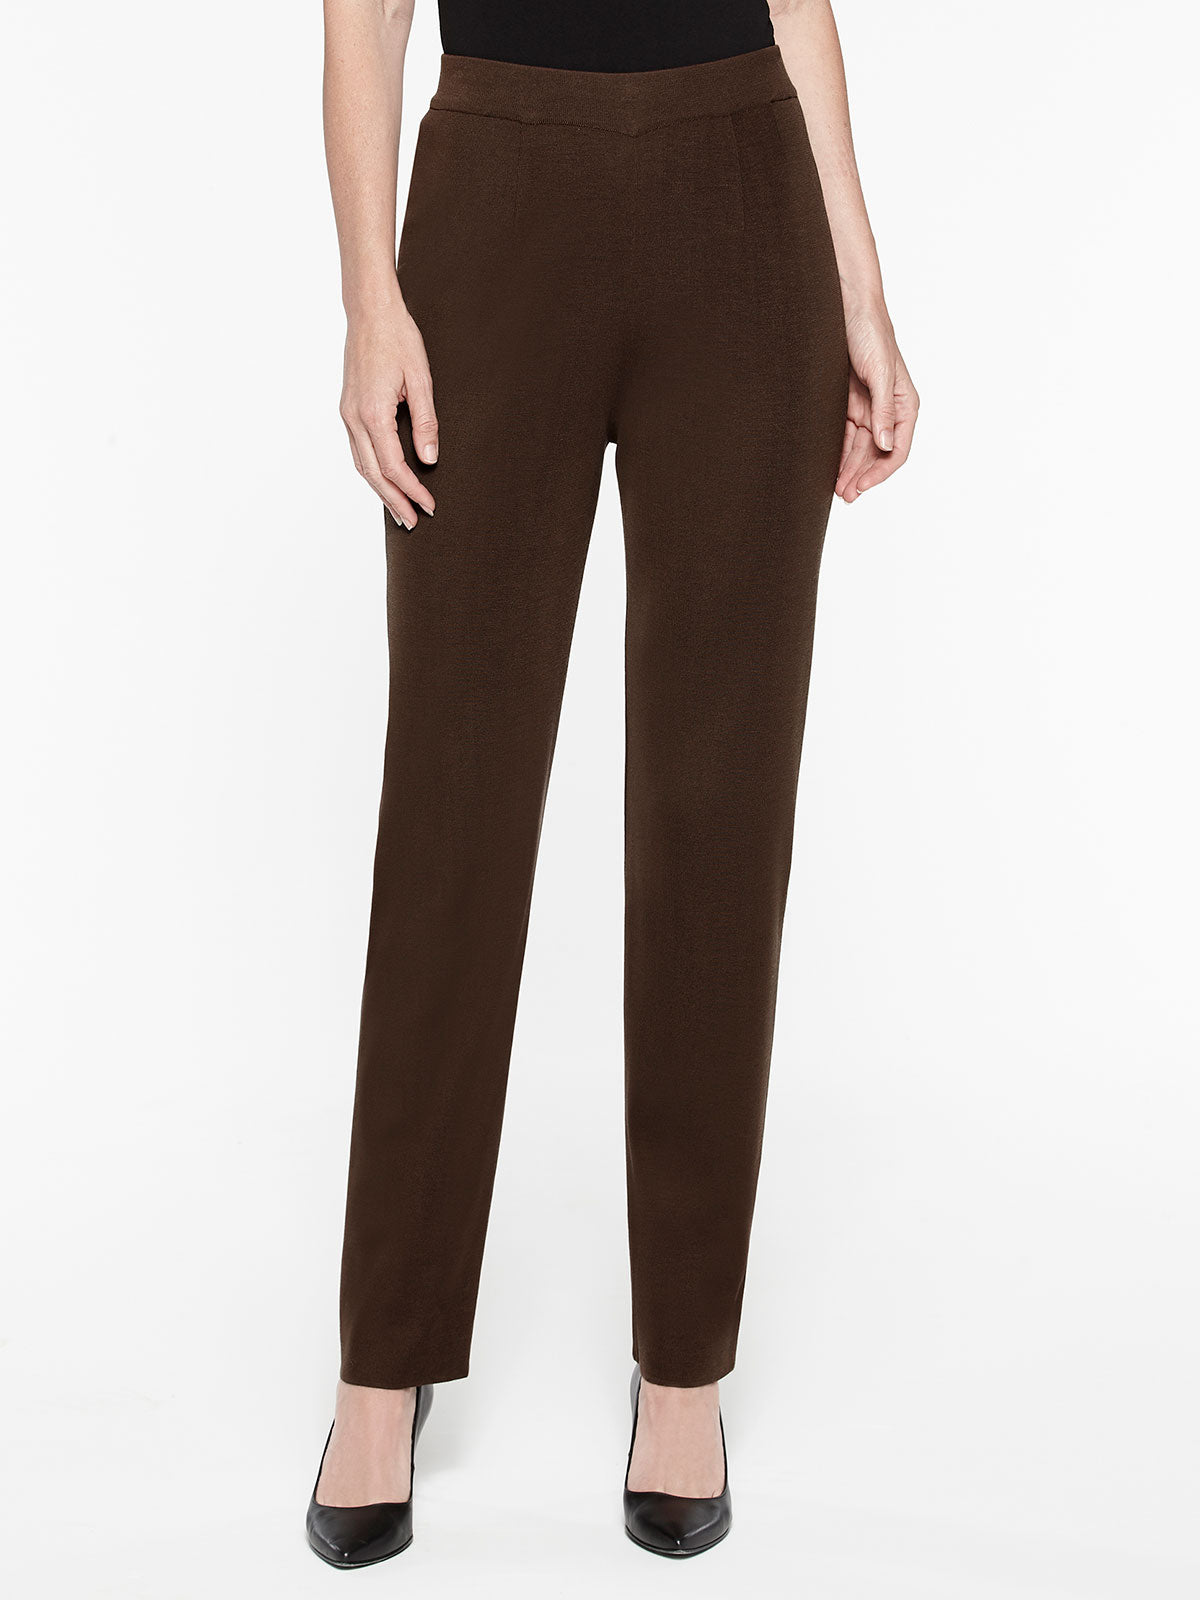 Plus Size Hickory Straight Leg Pant Color Hickory Brown